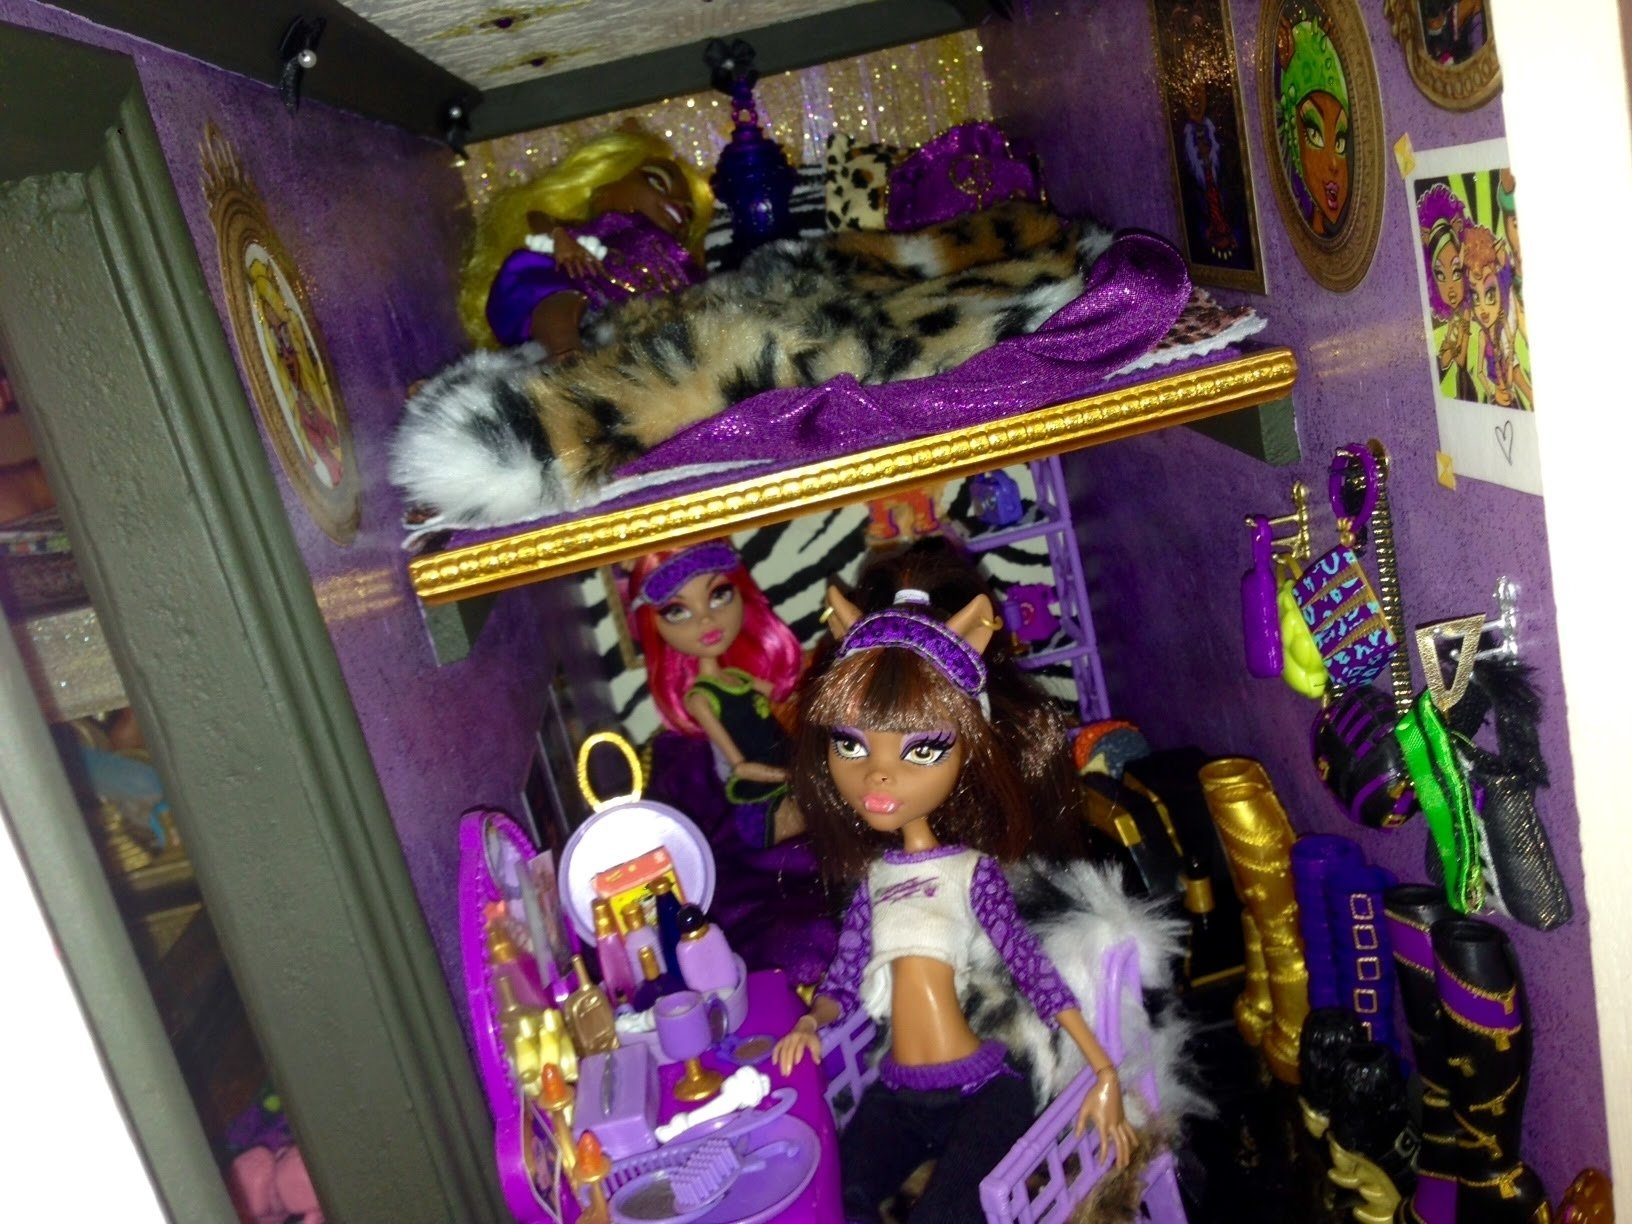 wolf den monster high doll house tour room 4 of 40+ bed of clawdeen